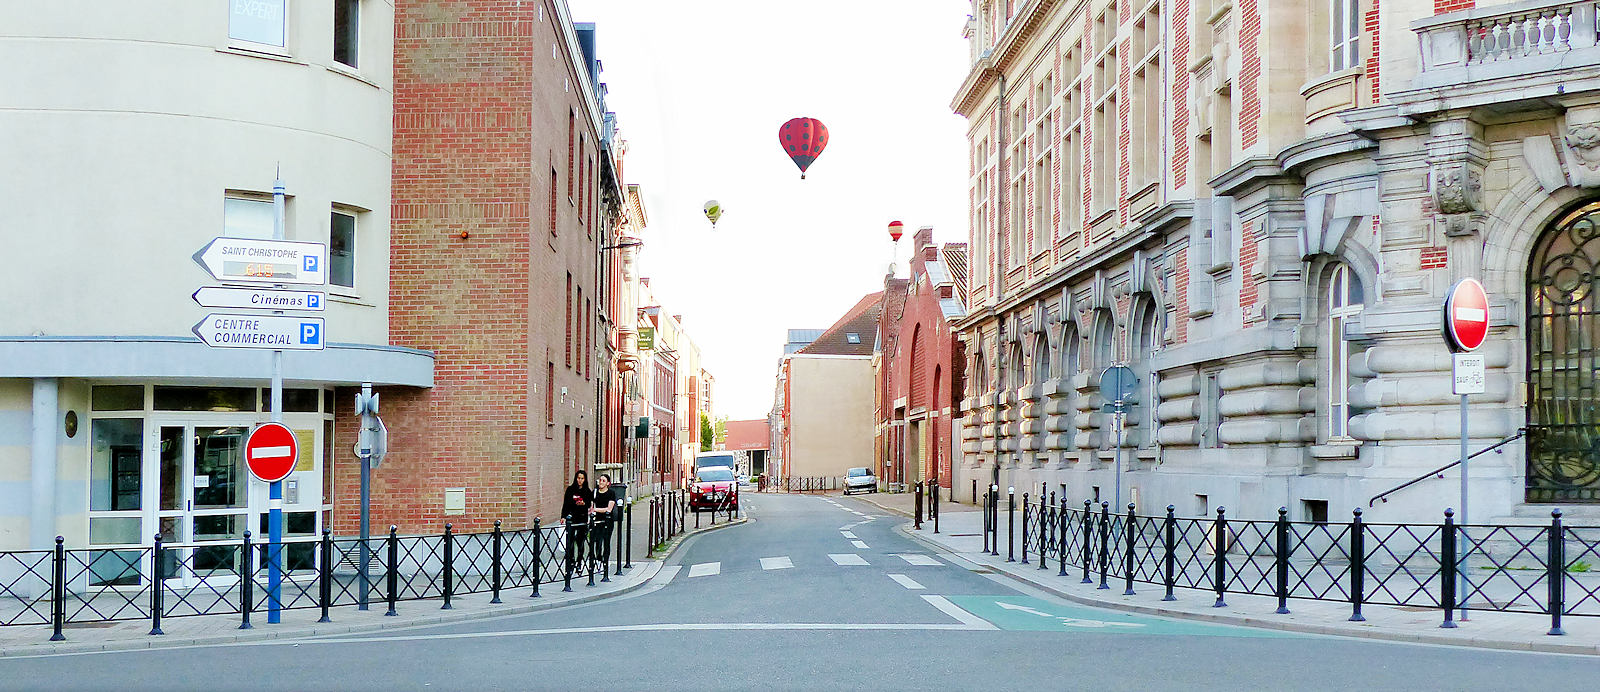 Tourcoing - Rue des Anges